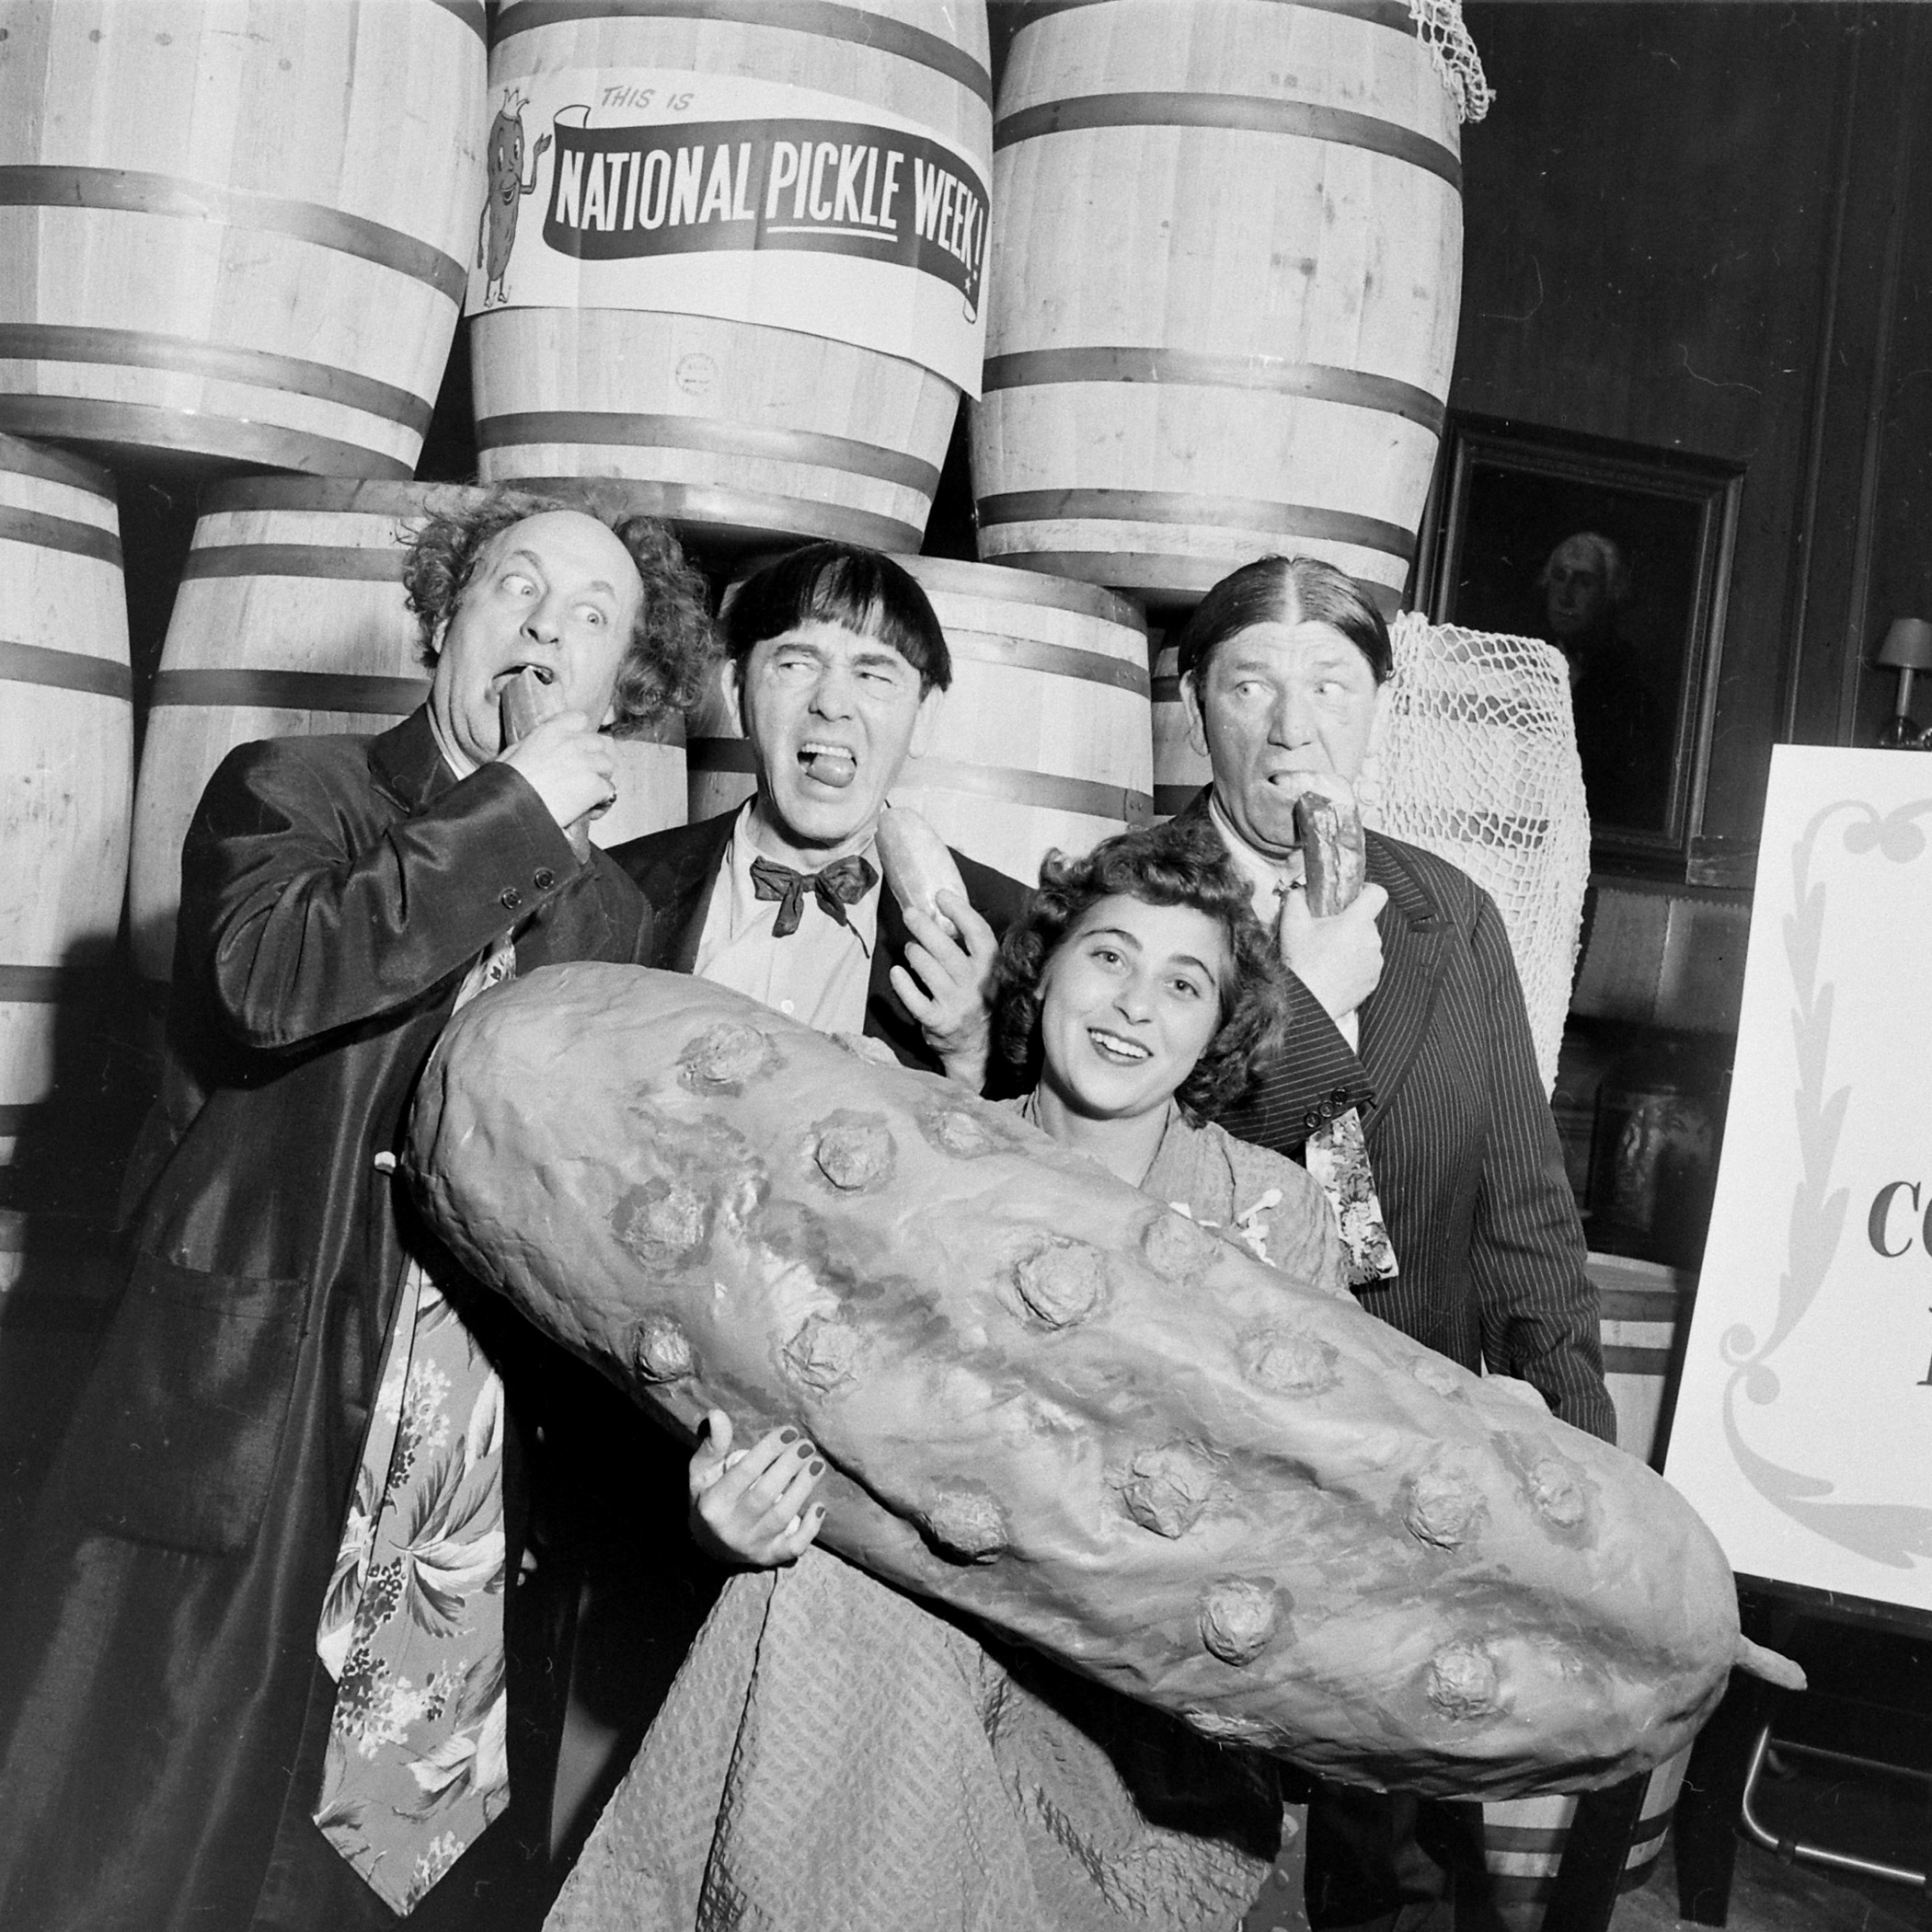 The Pickle Queen poses with the Three Stooges during National Pickle Week, 1949.